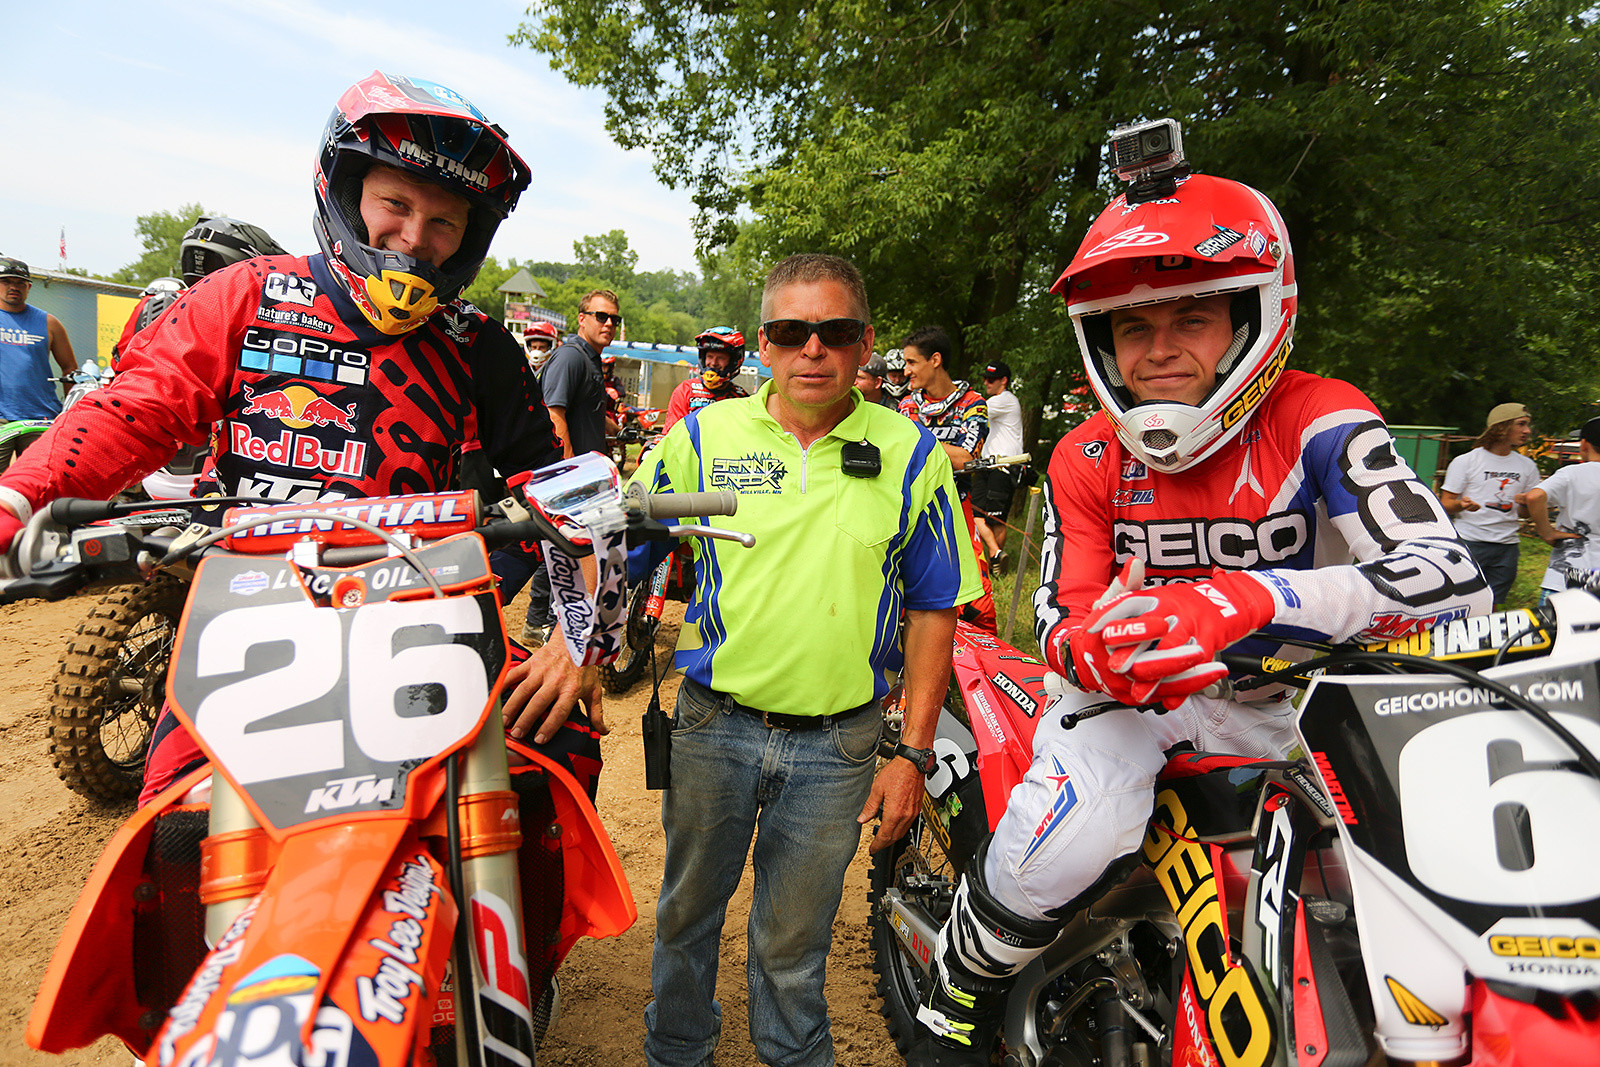 When you head to Millville, you're in Martin country. From left to right, it's Alex, John, and Jeremy Martin.